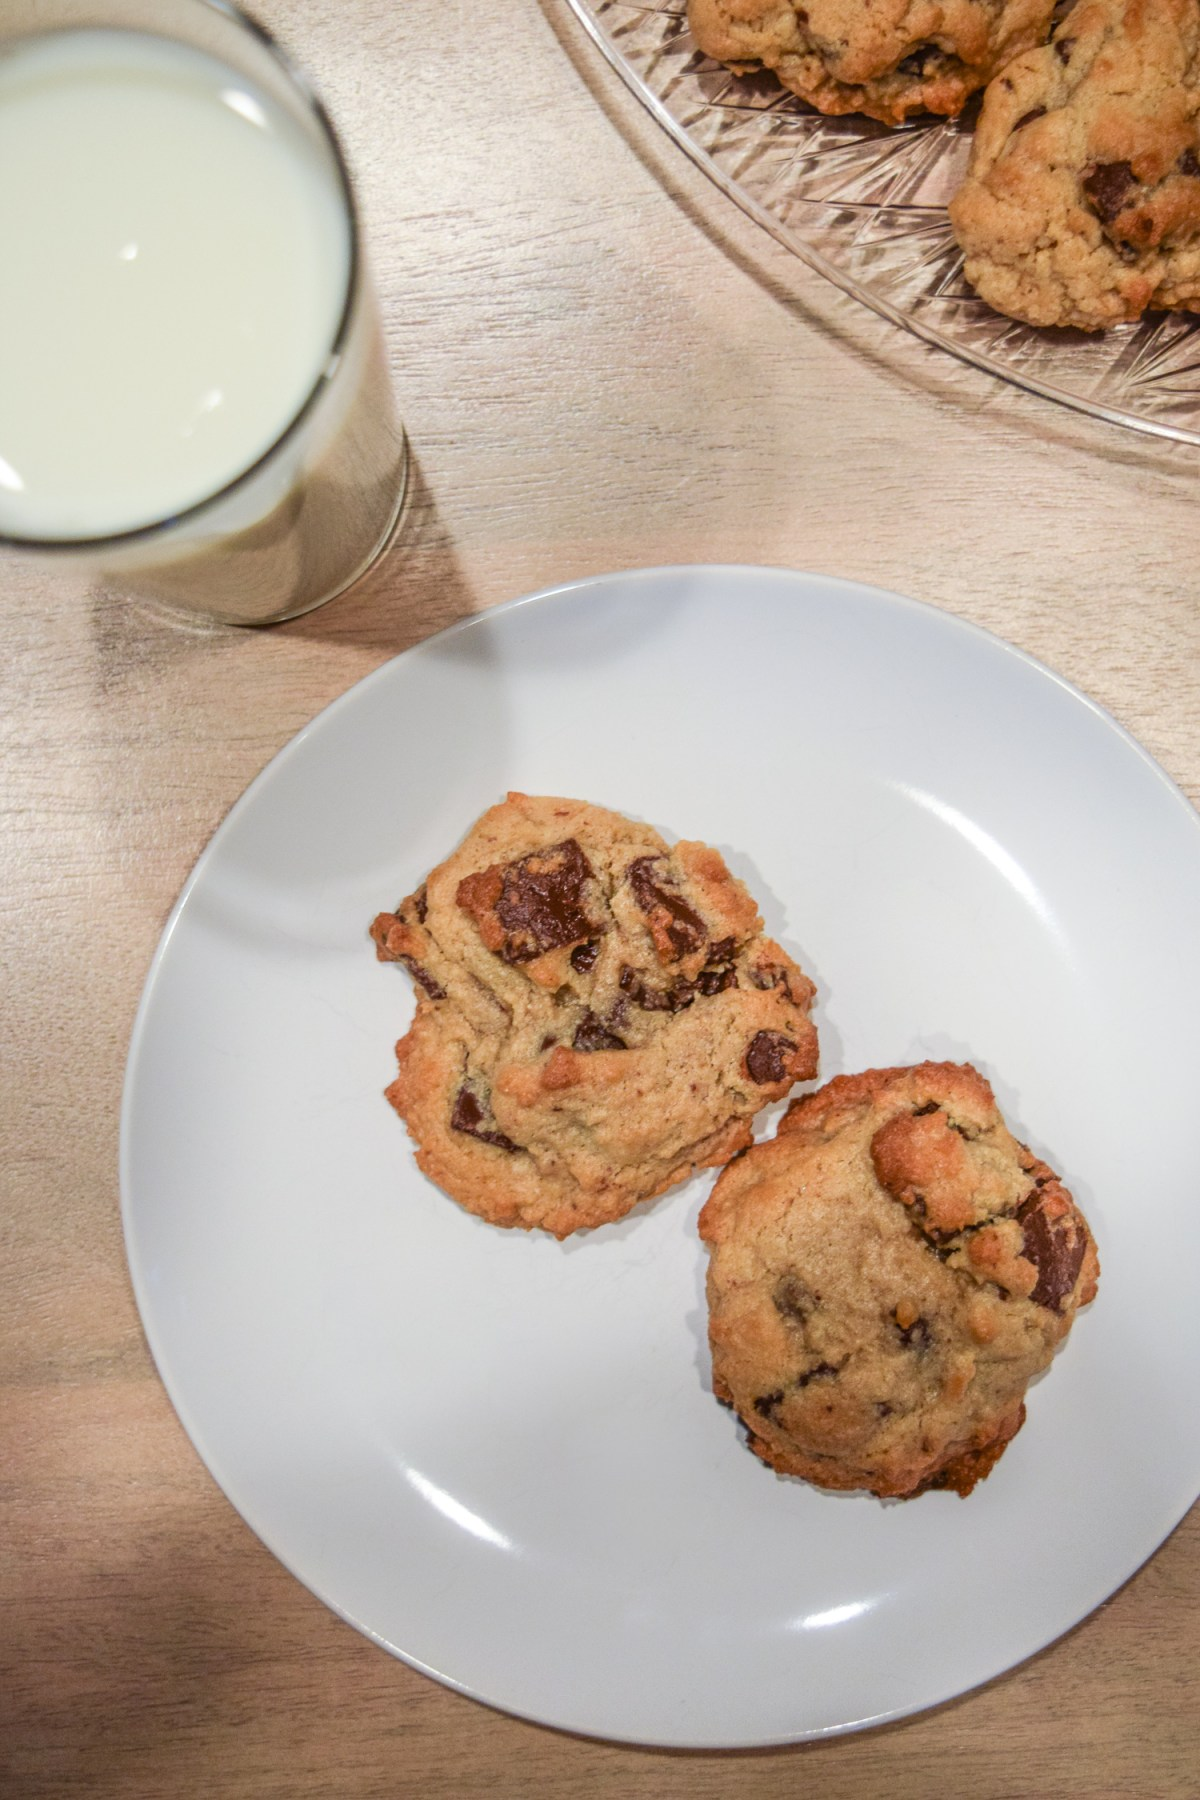 Specialty's Semi-Sweet Chocolate Chunk Cookies with glass of milk from above